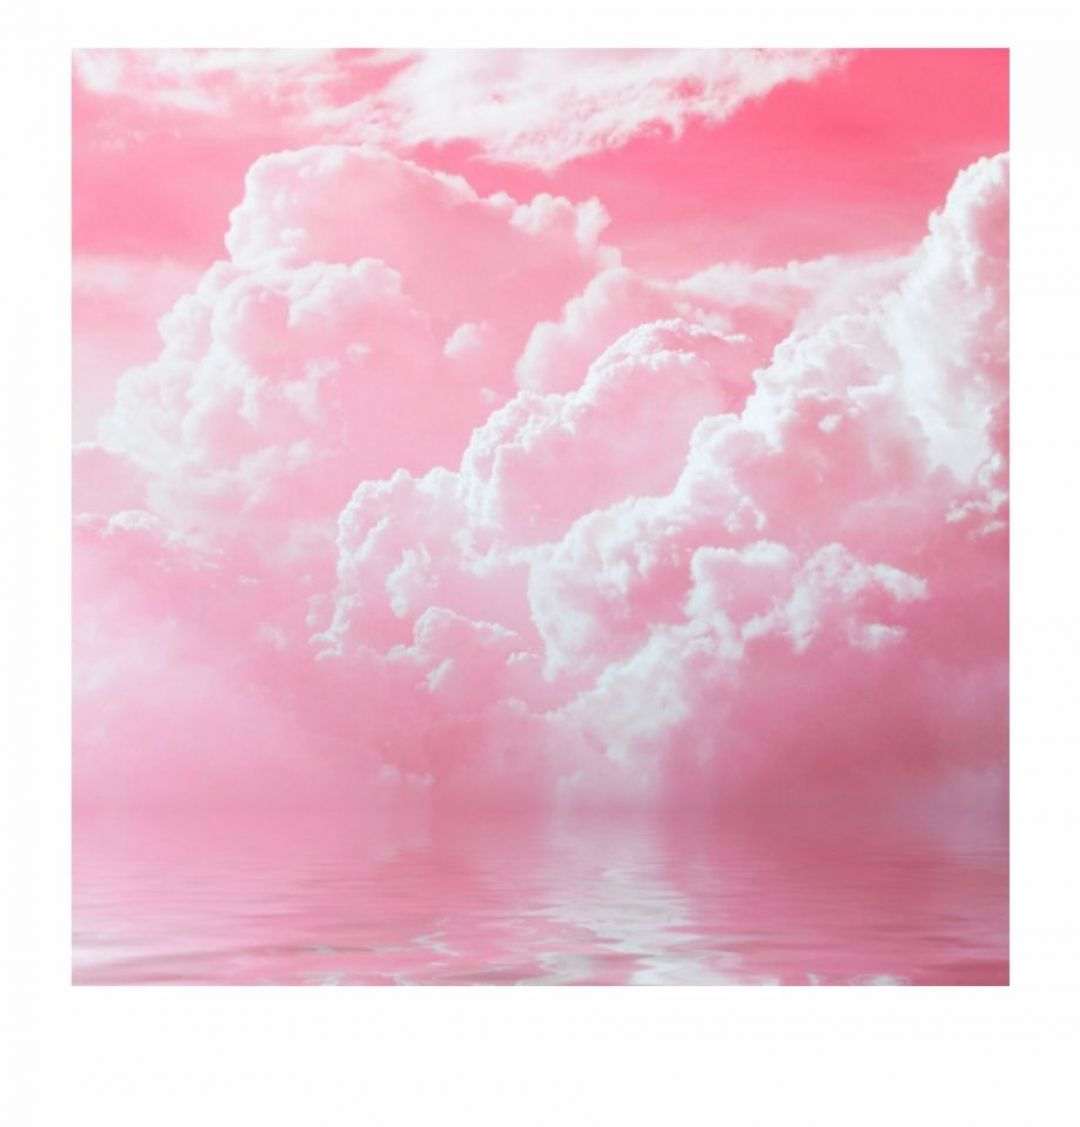 Clouds Aesthetic Tumblr - Aesthetic Light Pink Background - HD Wallpaper